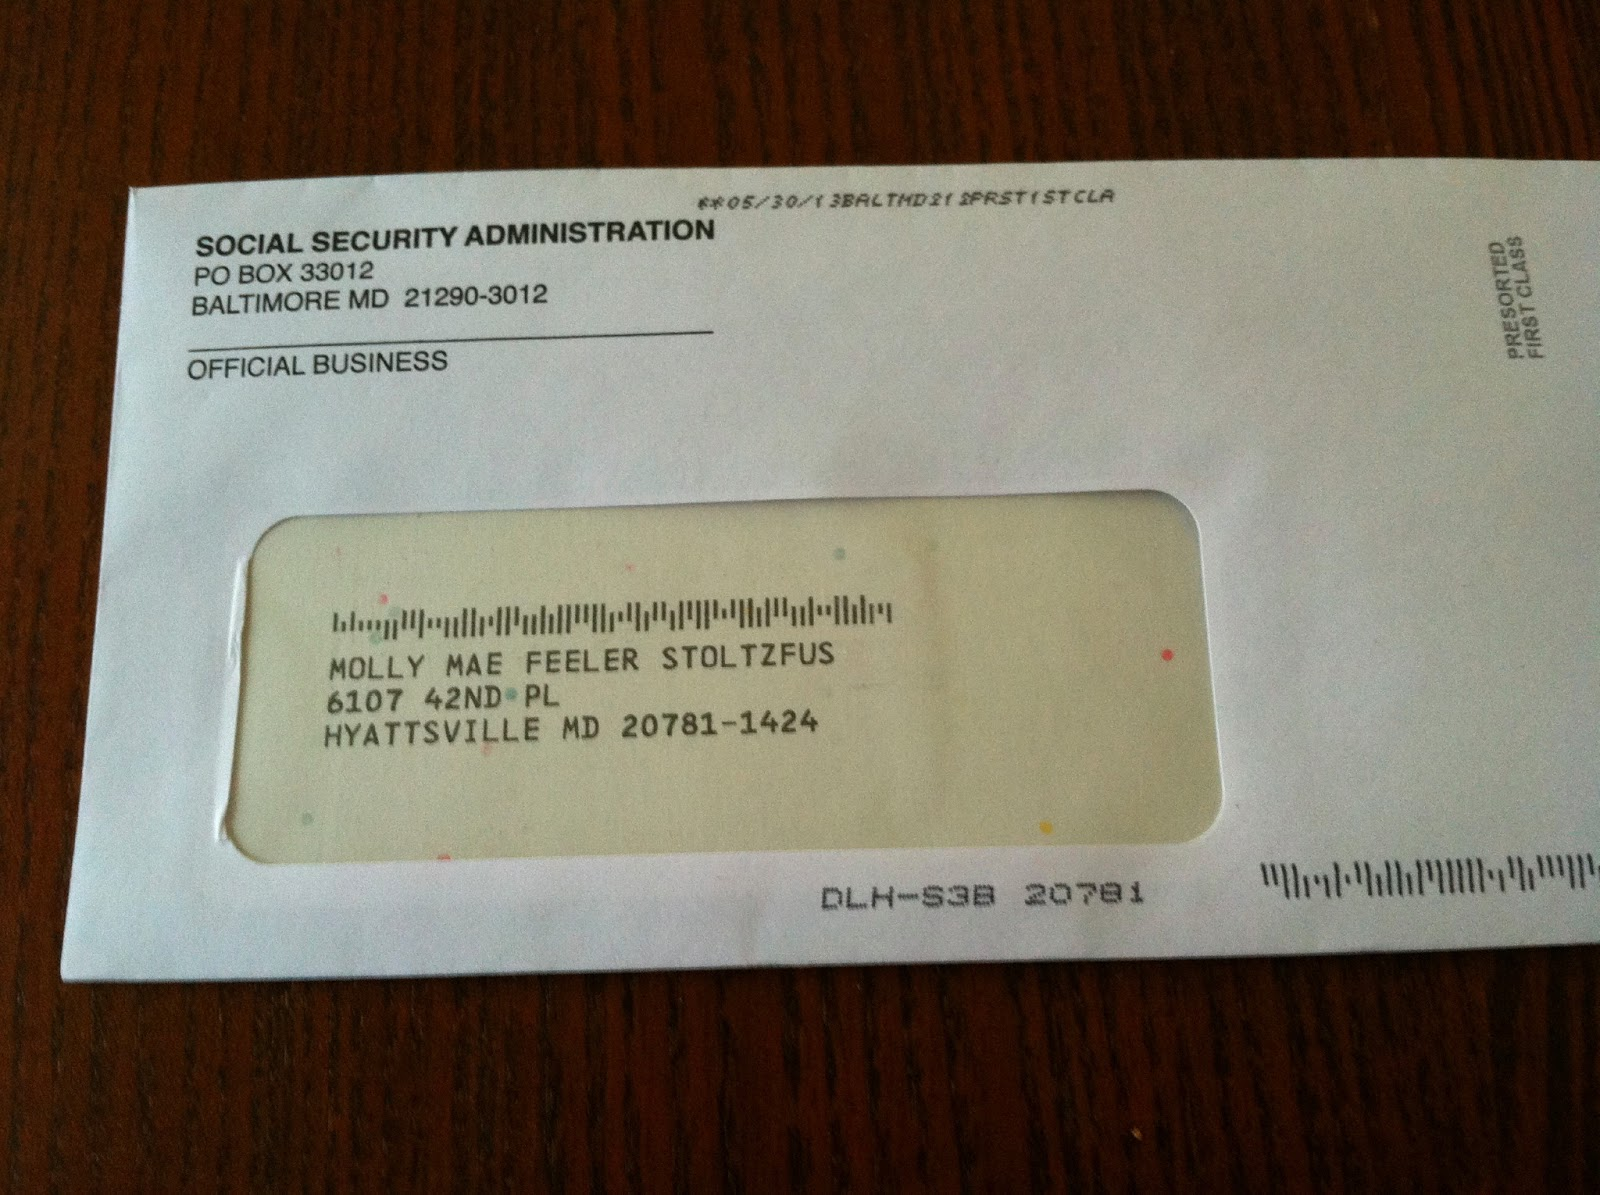 What does a social security card look like